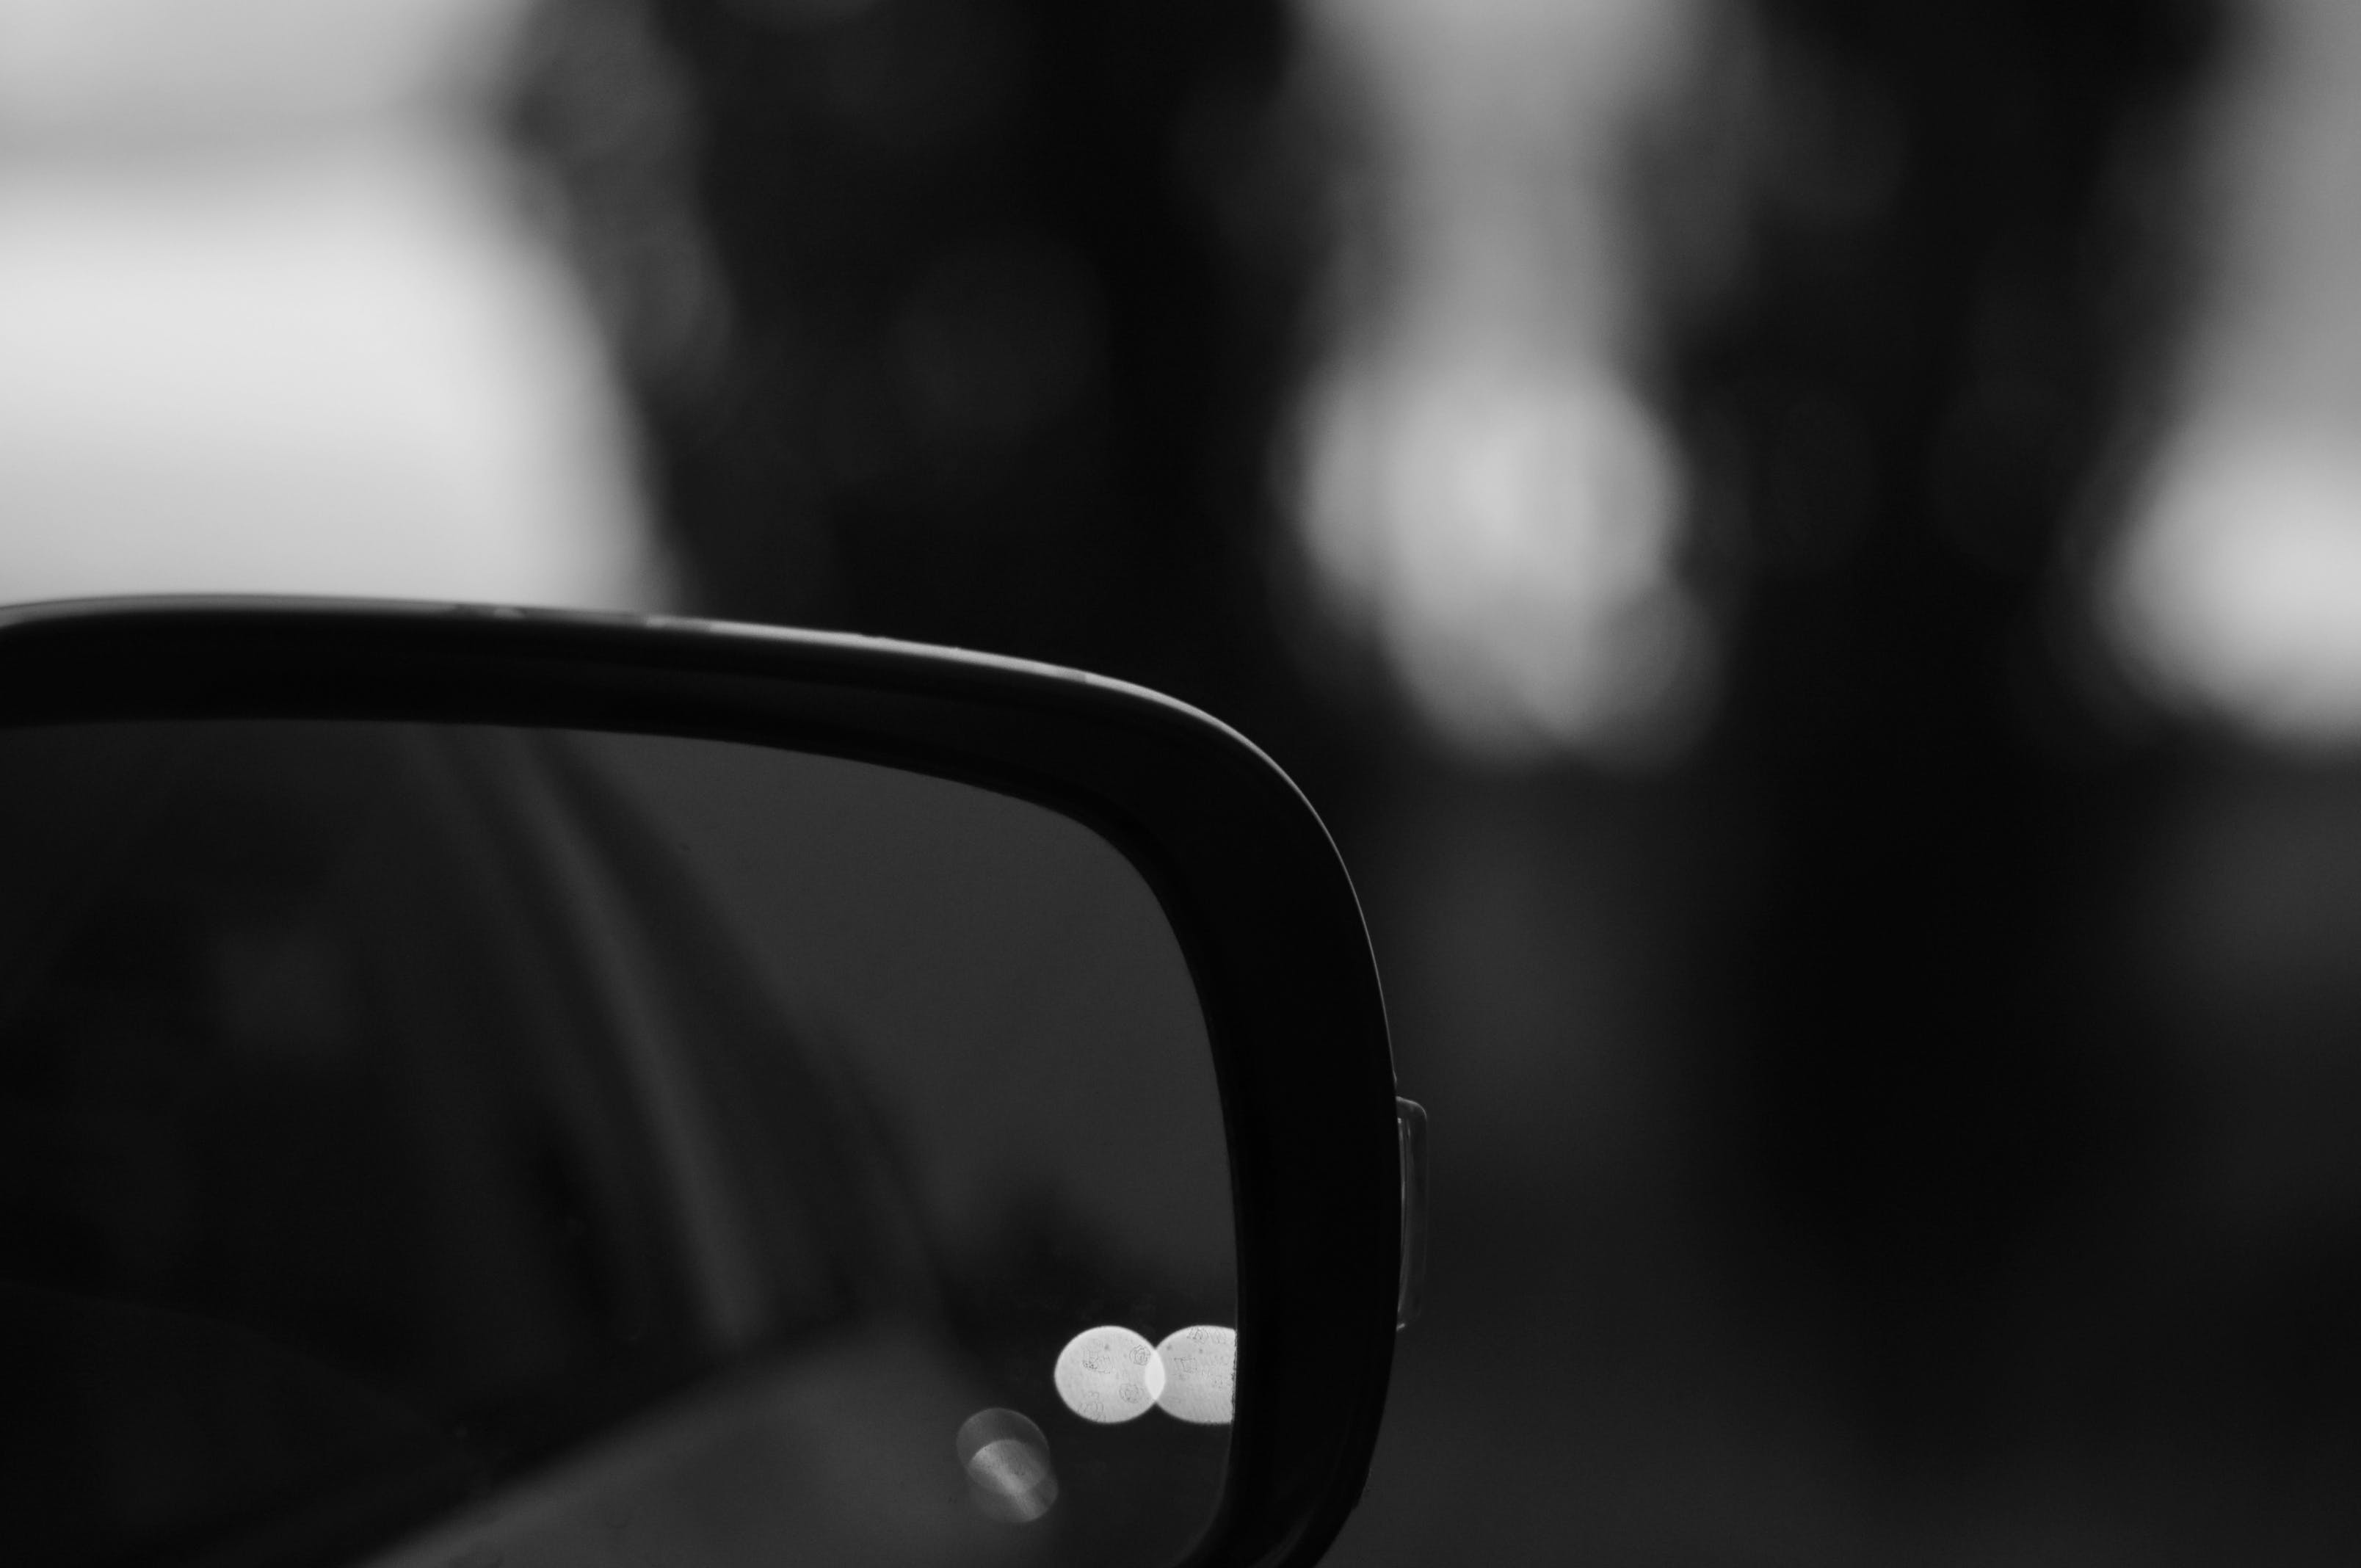 Free stock photo of abstract photo, black and white, black and-white, black mirror